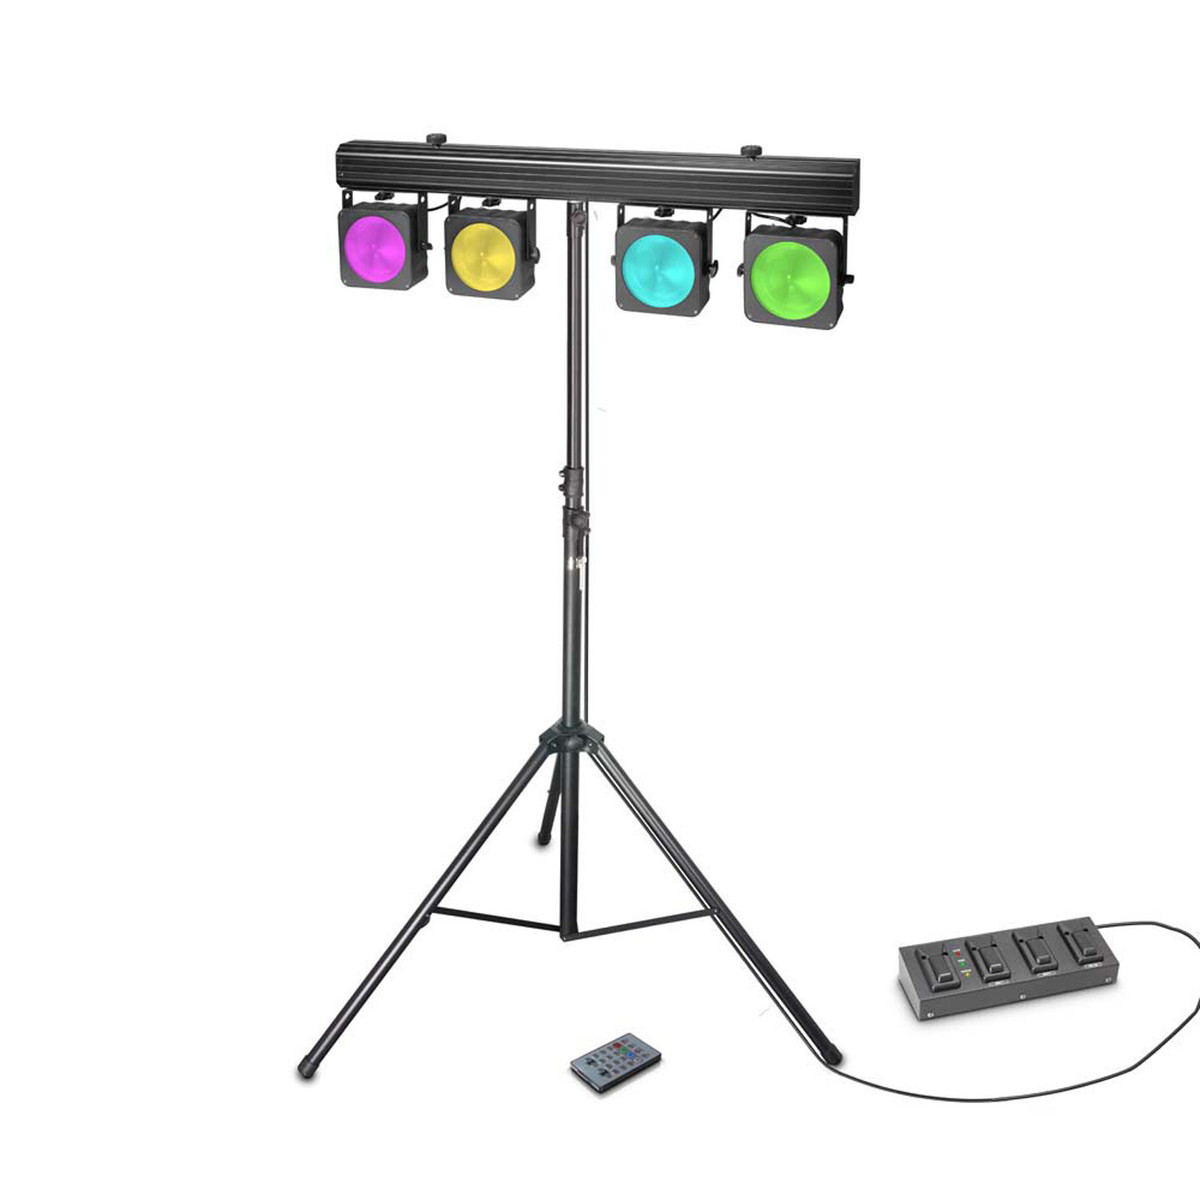 cameo multi par set 4 x 30w cob led lighting system  with case at gear4music